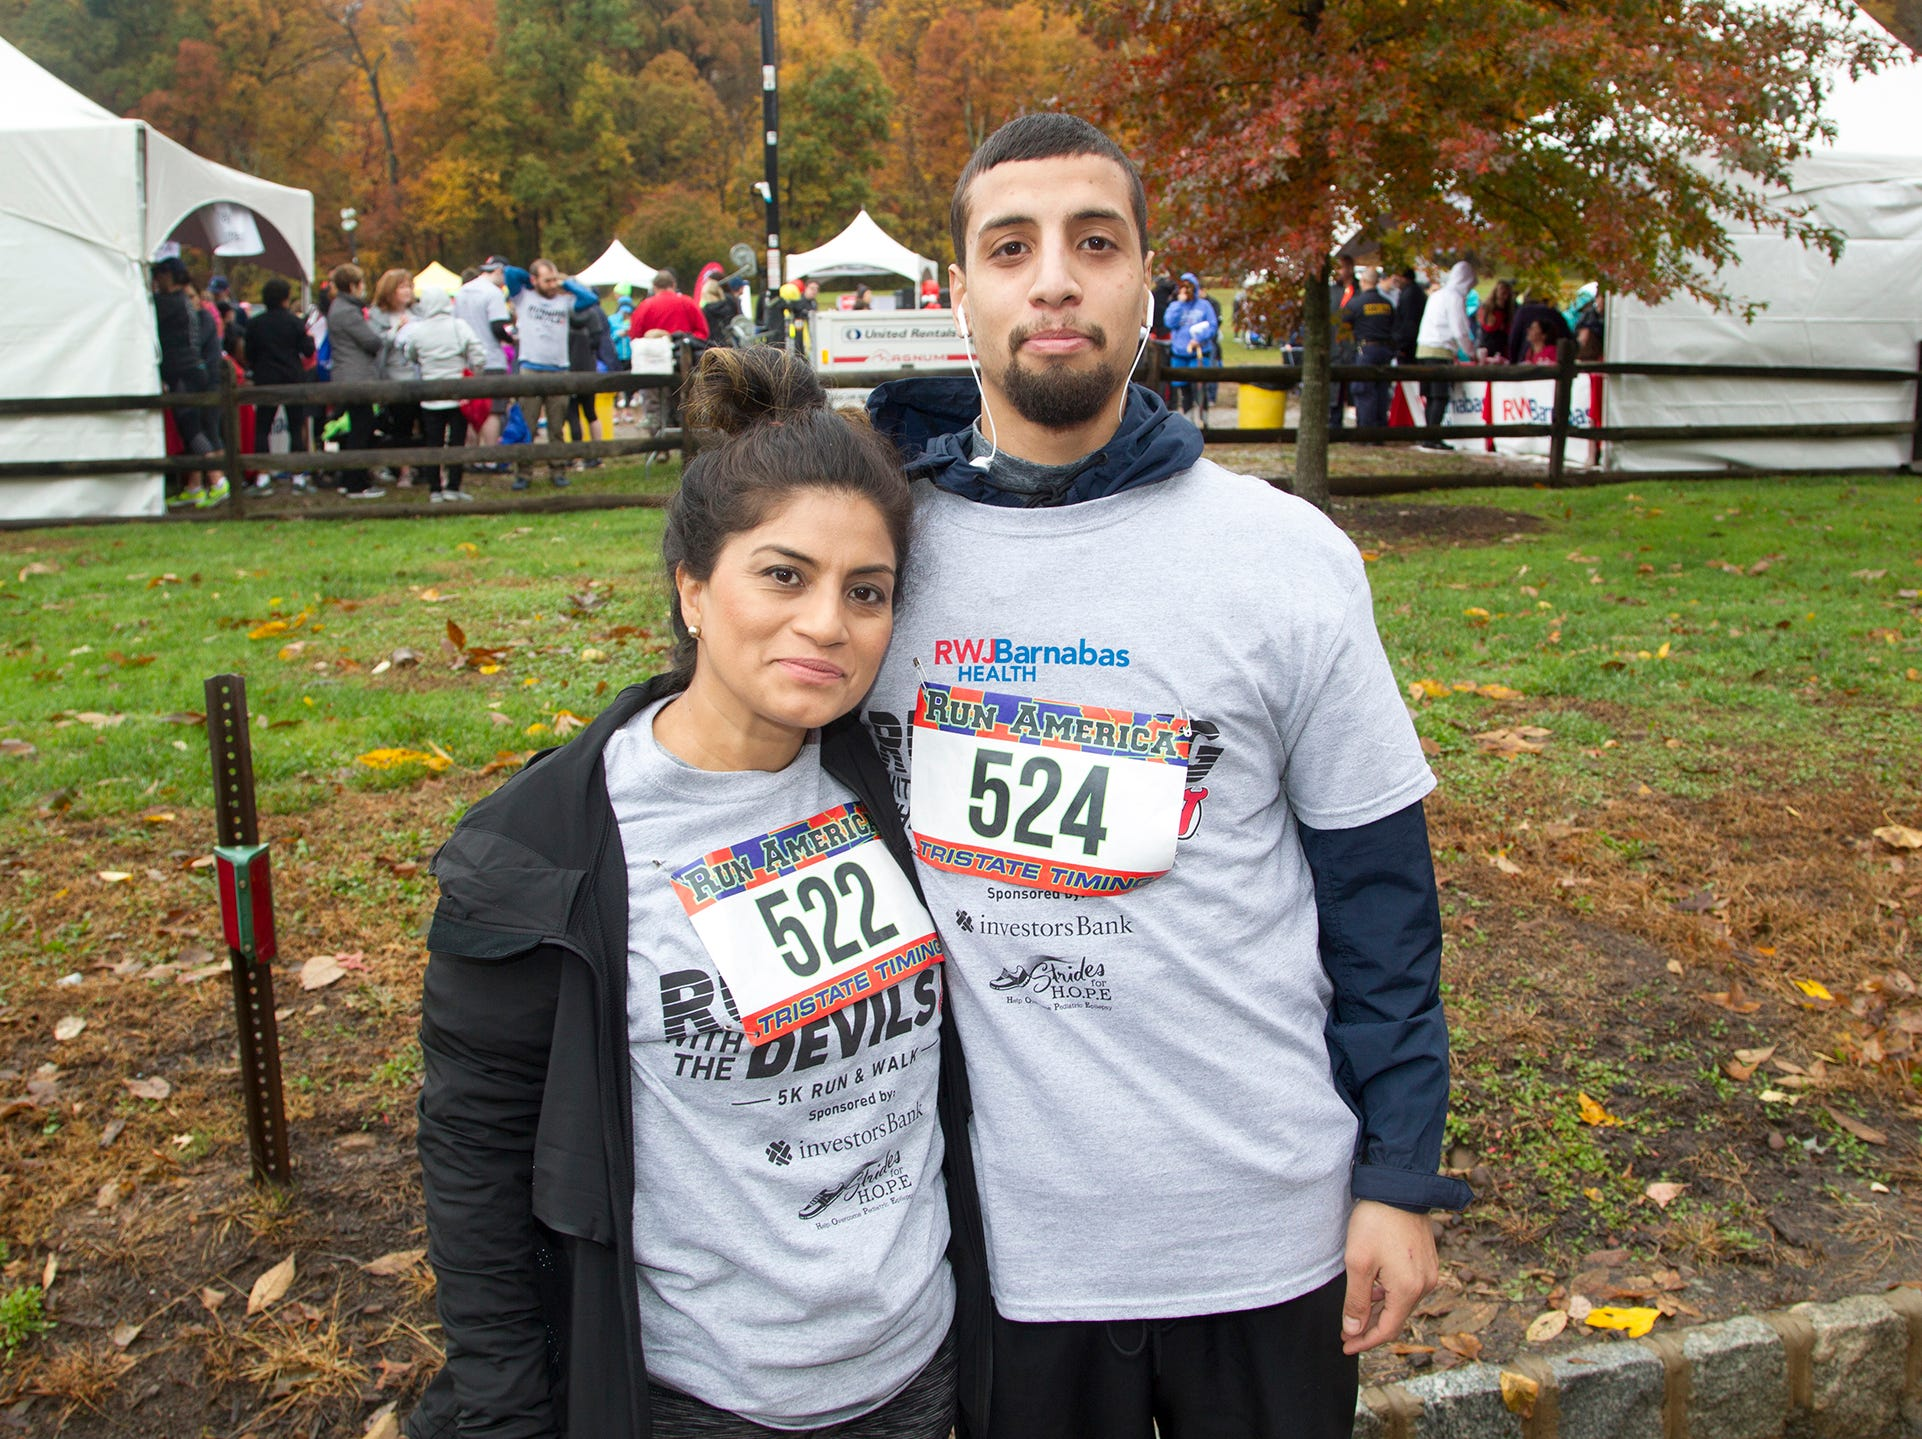 Marjorie and William Rodriguez. RWJBarnabas Health Running with the Devils 5K Run and Family Fun Walk at South Mountain Recreation in West Orange. 10/03/2018